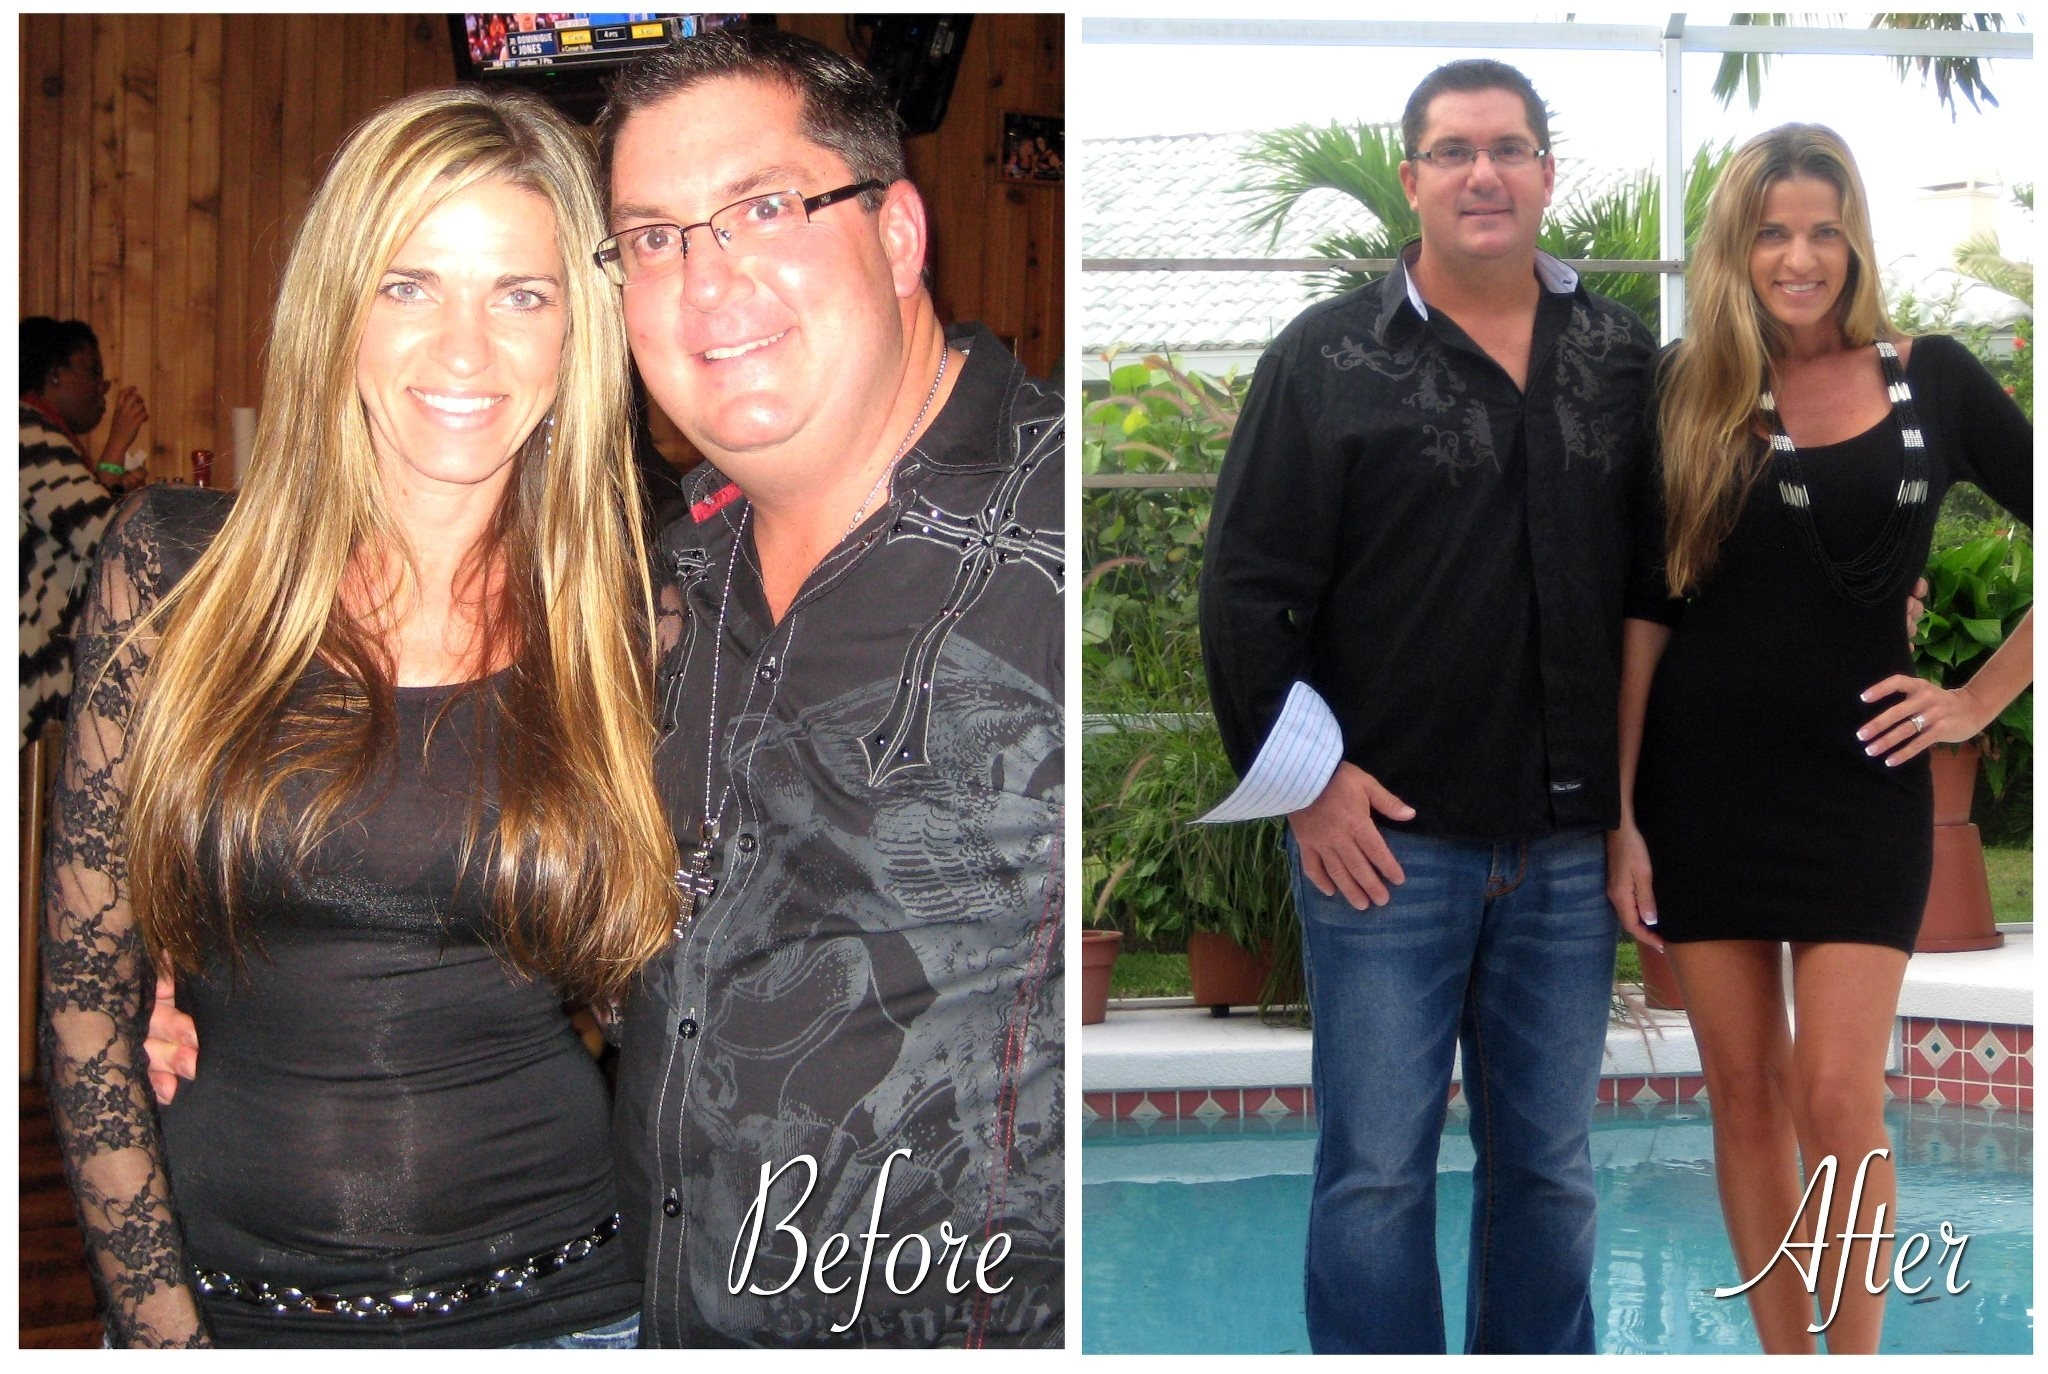 Bill-and-Dawn-Ball-Before-and-After-Javita-Weight-Loss-CoffeeWeight-Loss-Coffee-Javita-lose-weight-fast-Dr.-Oz-Garcinia-Cambogia-Yerba-Mate.jpg